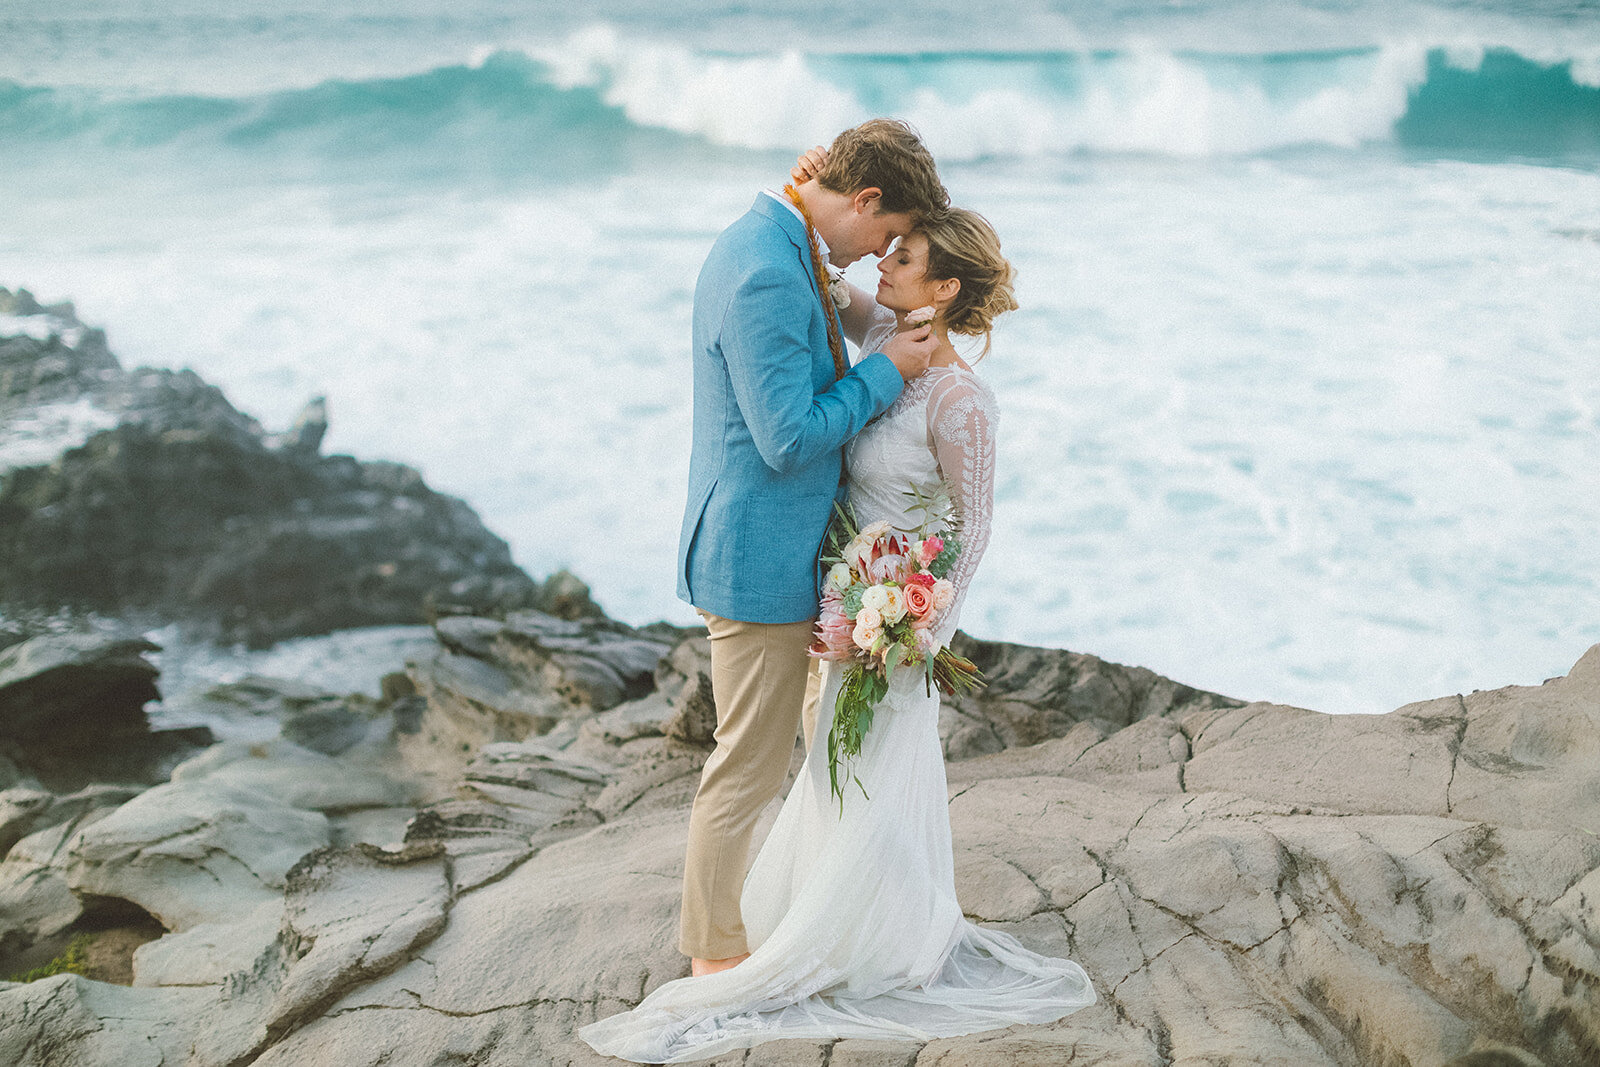 Maui wedding photographer20181126_0017.jpg